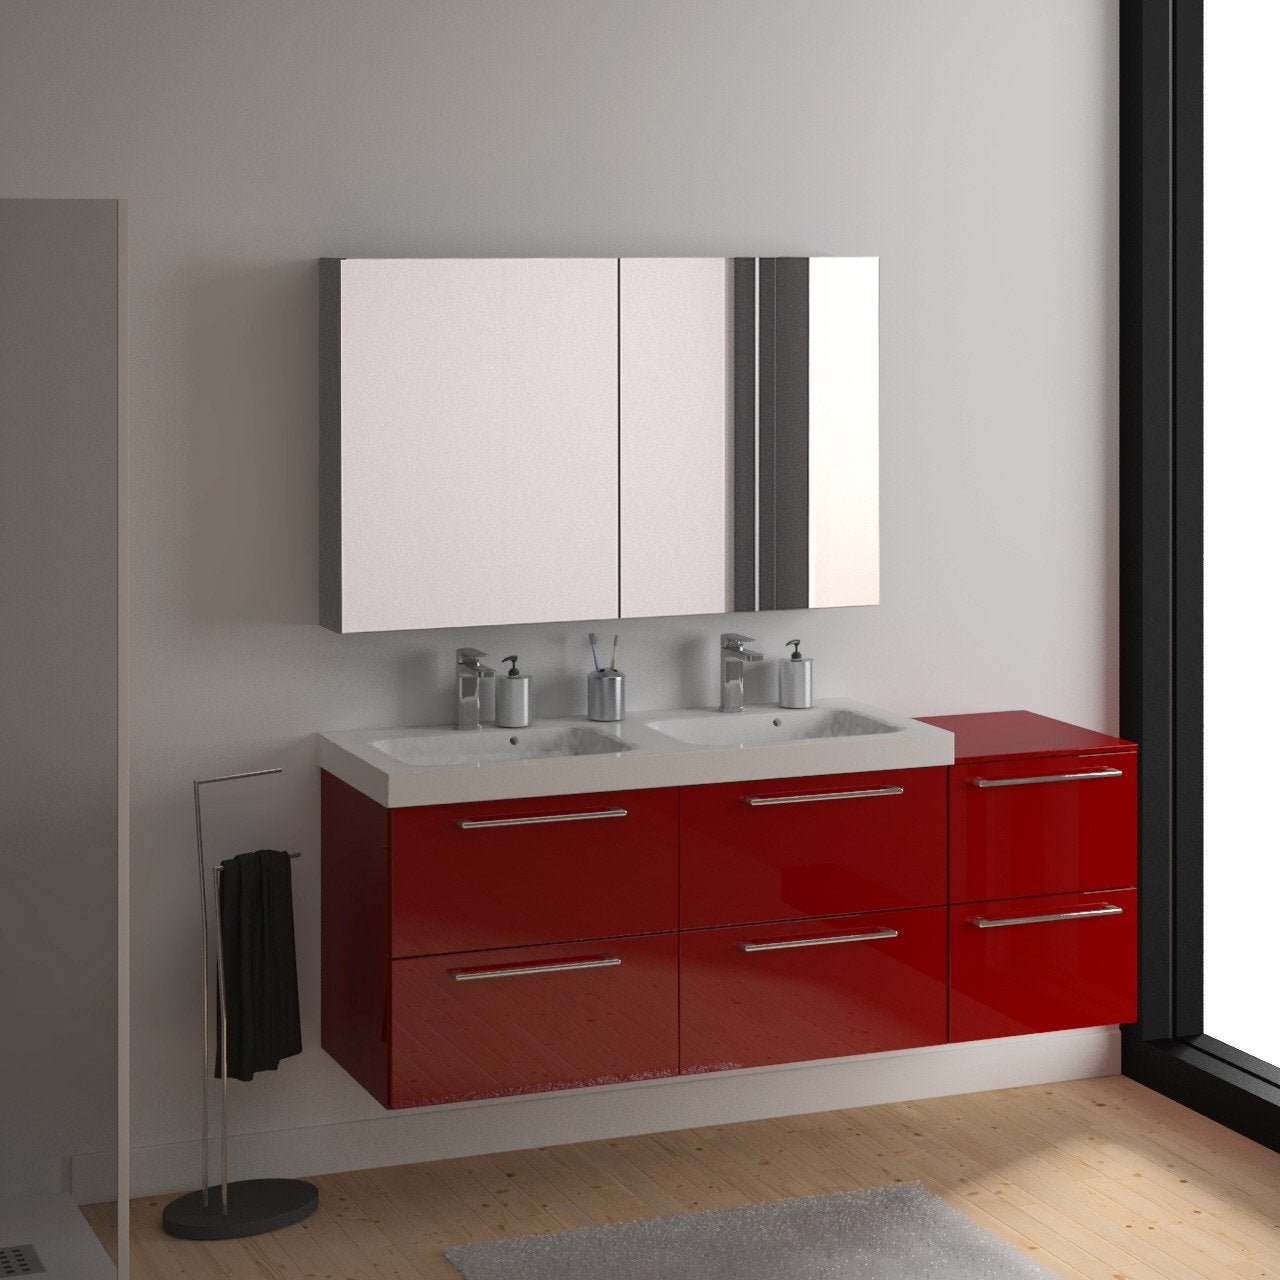 meuble de salle de bains remix rouge rouge n 3 121x48 5 cm 6 tiroirs leroy merlin. Black Bedroom Furniture Sets. Home Design Ideas